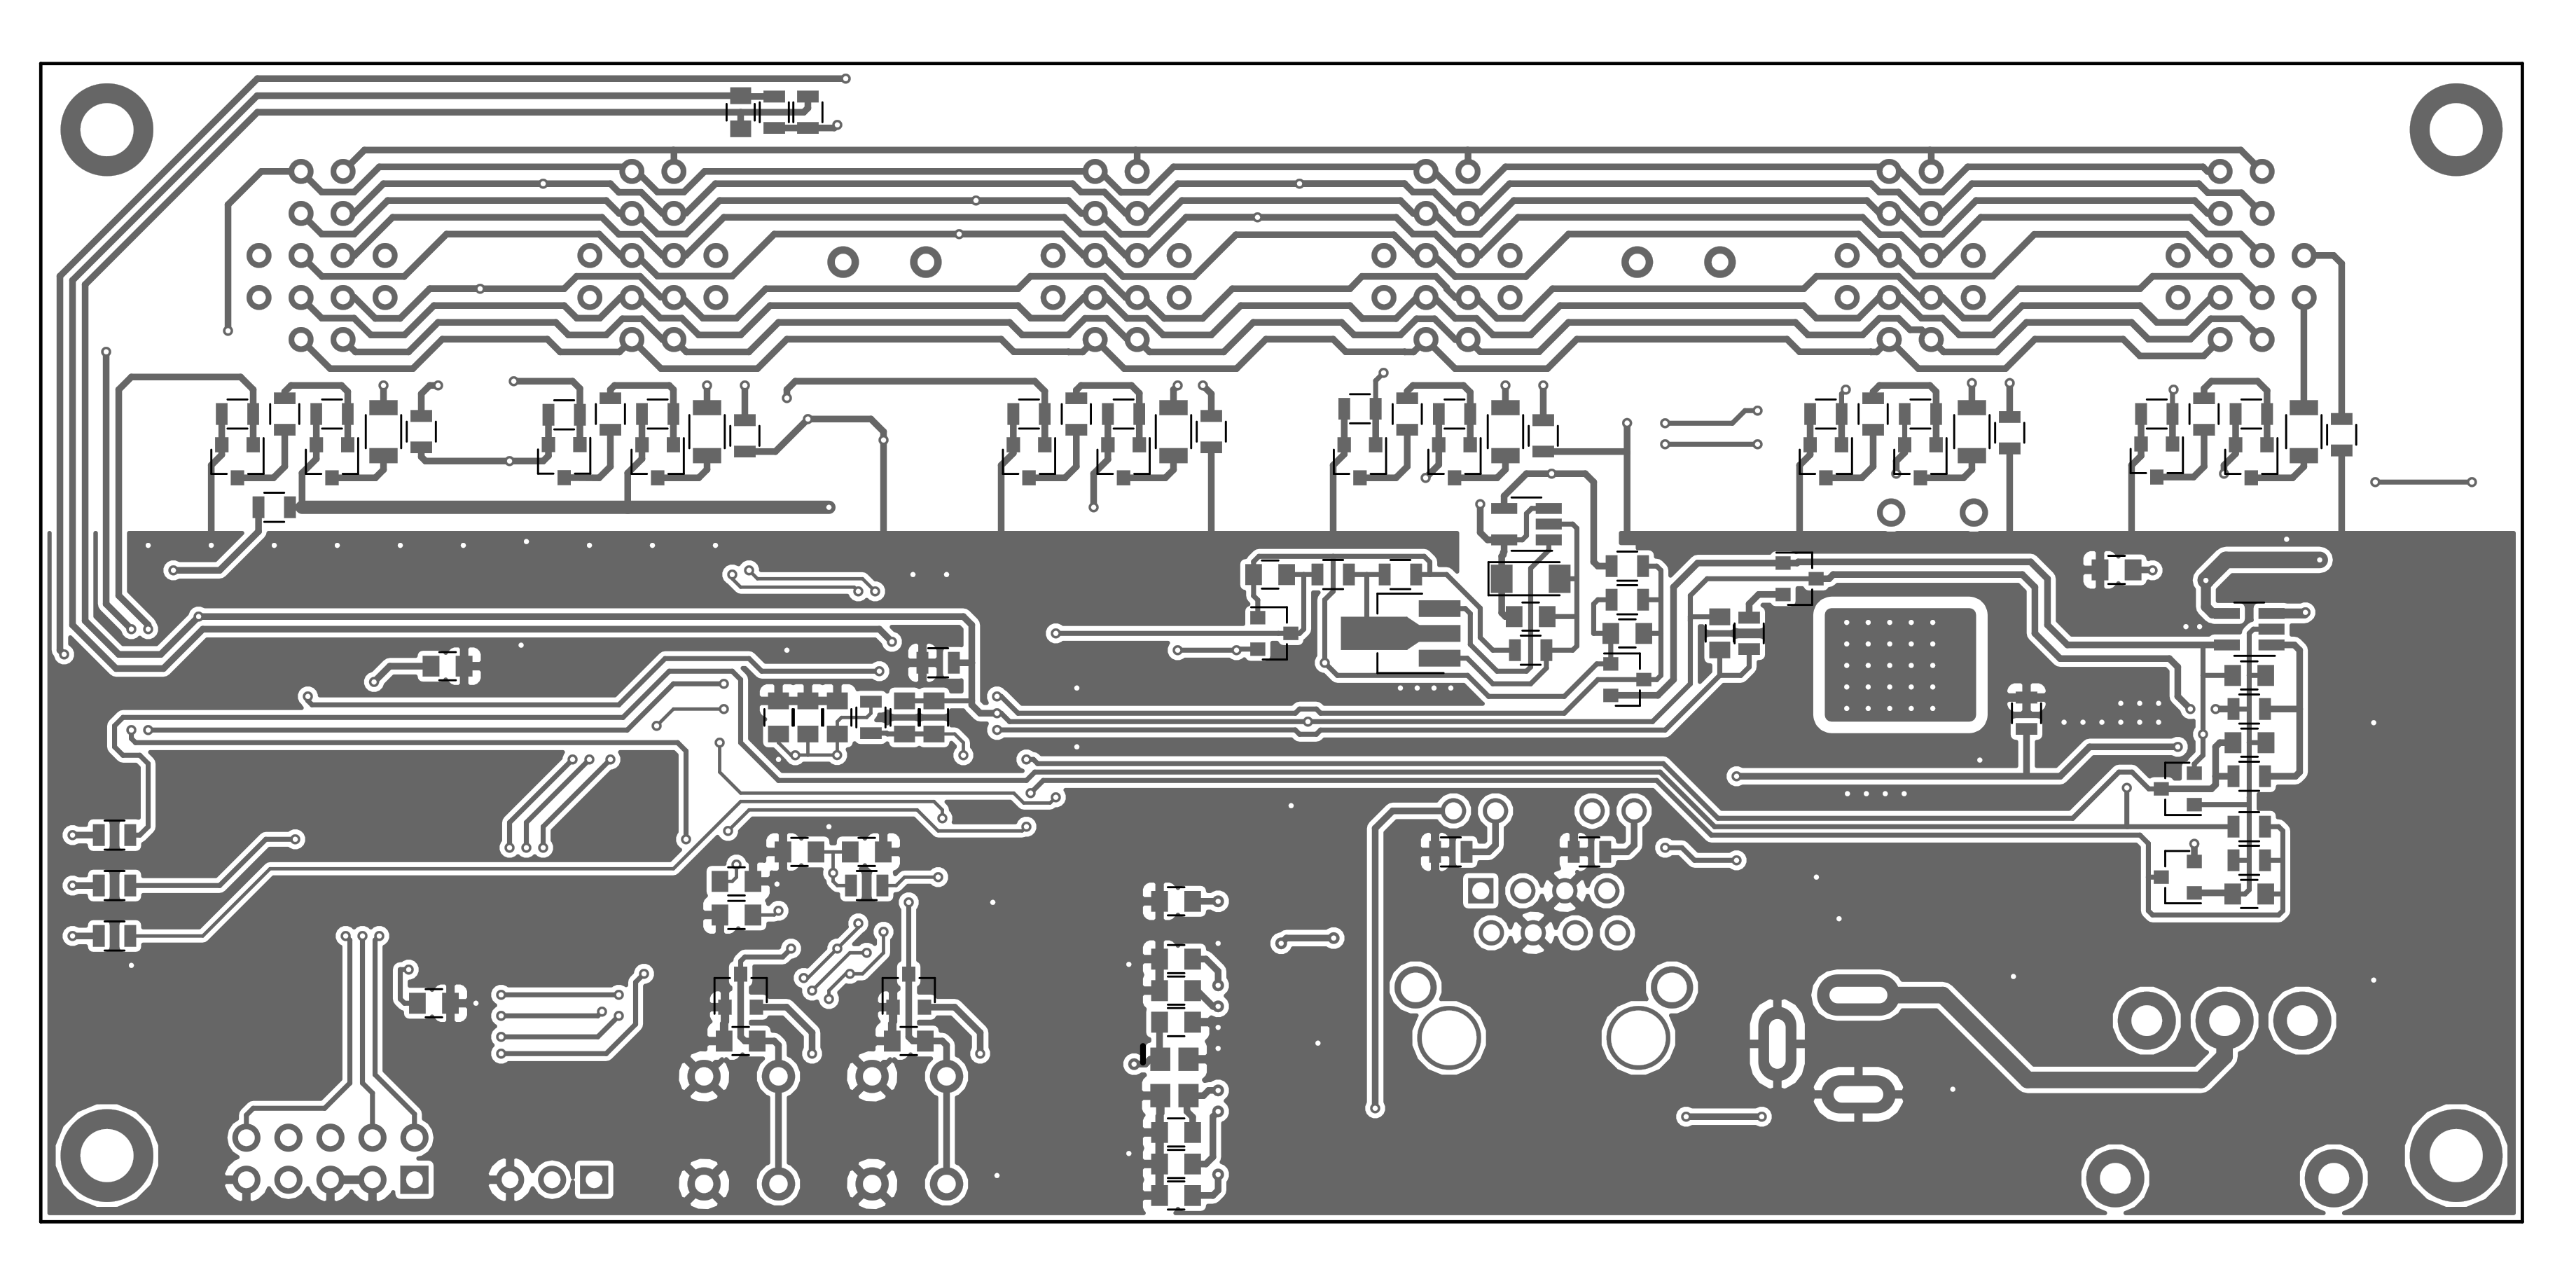 BP/pictures/PCB_back.png